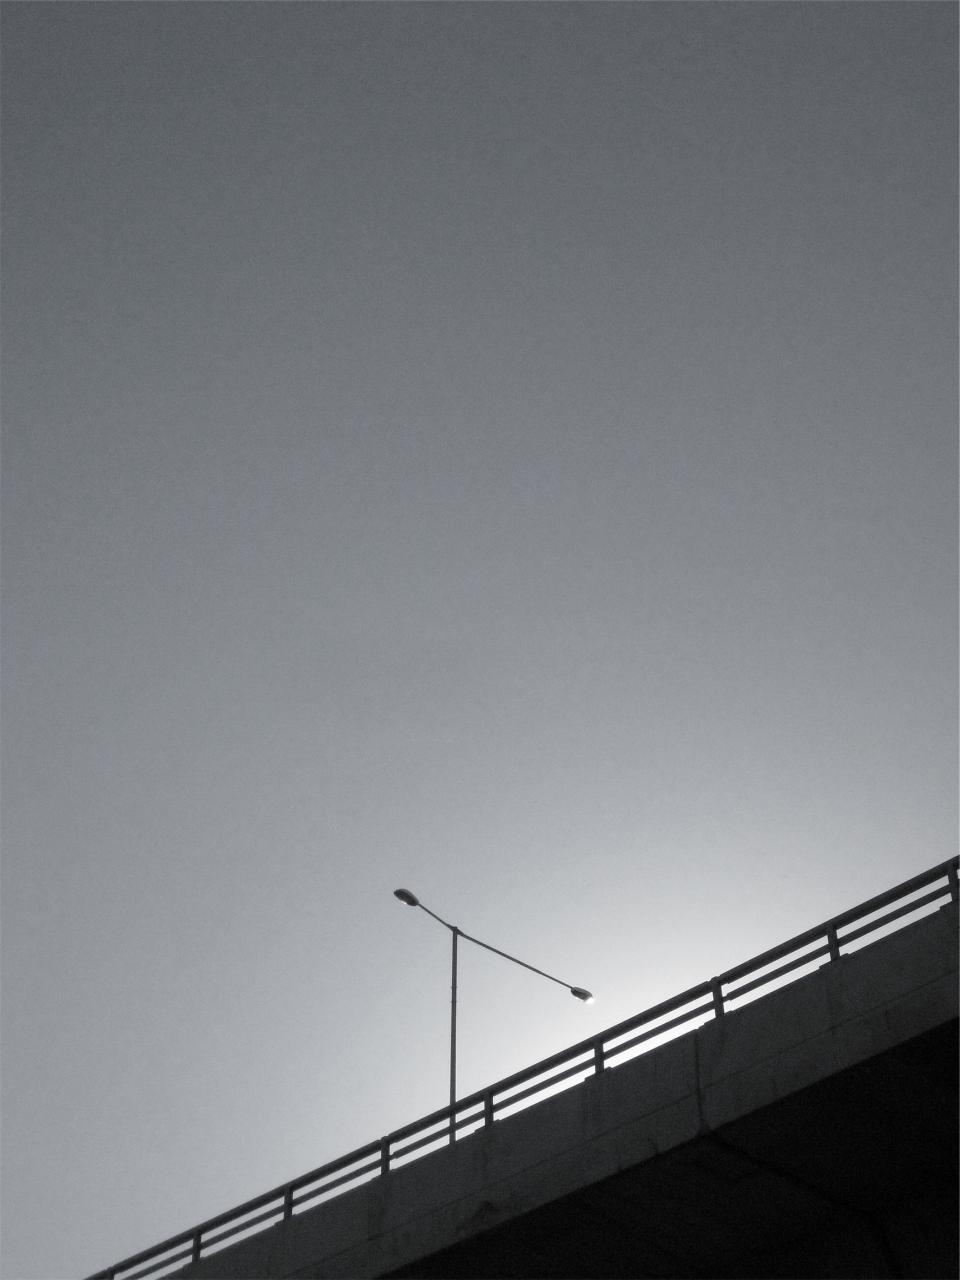 overpass, lamp post, black and white